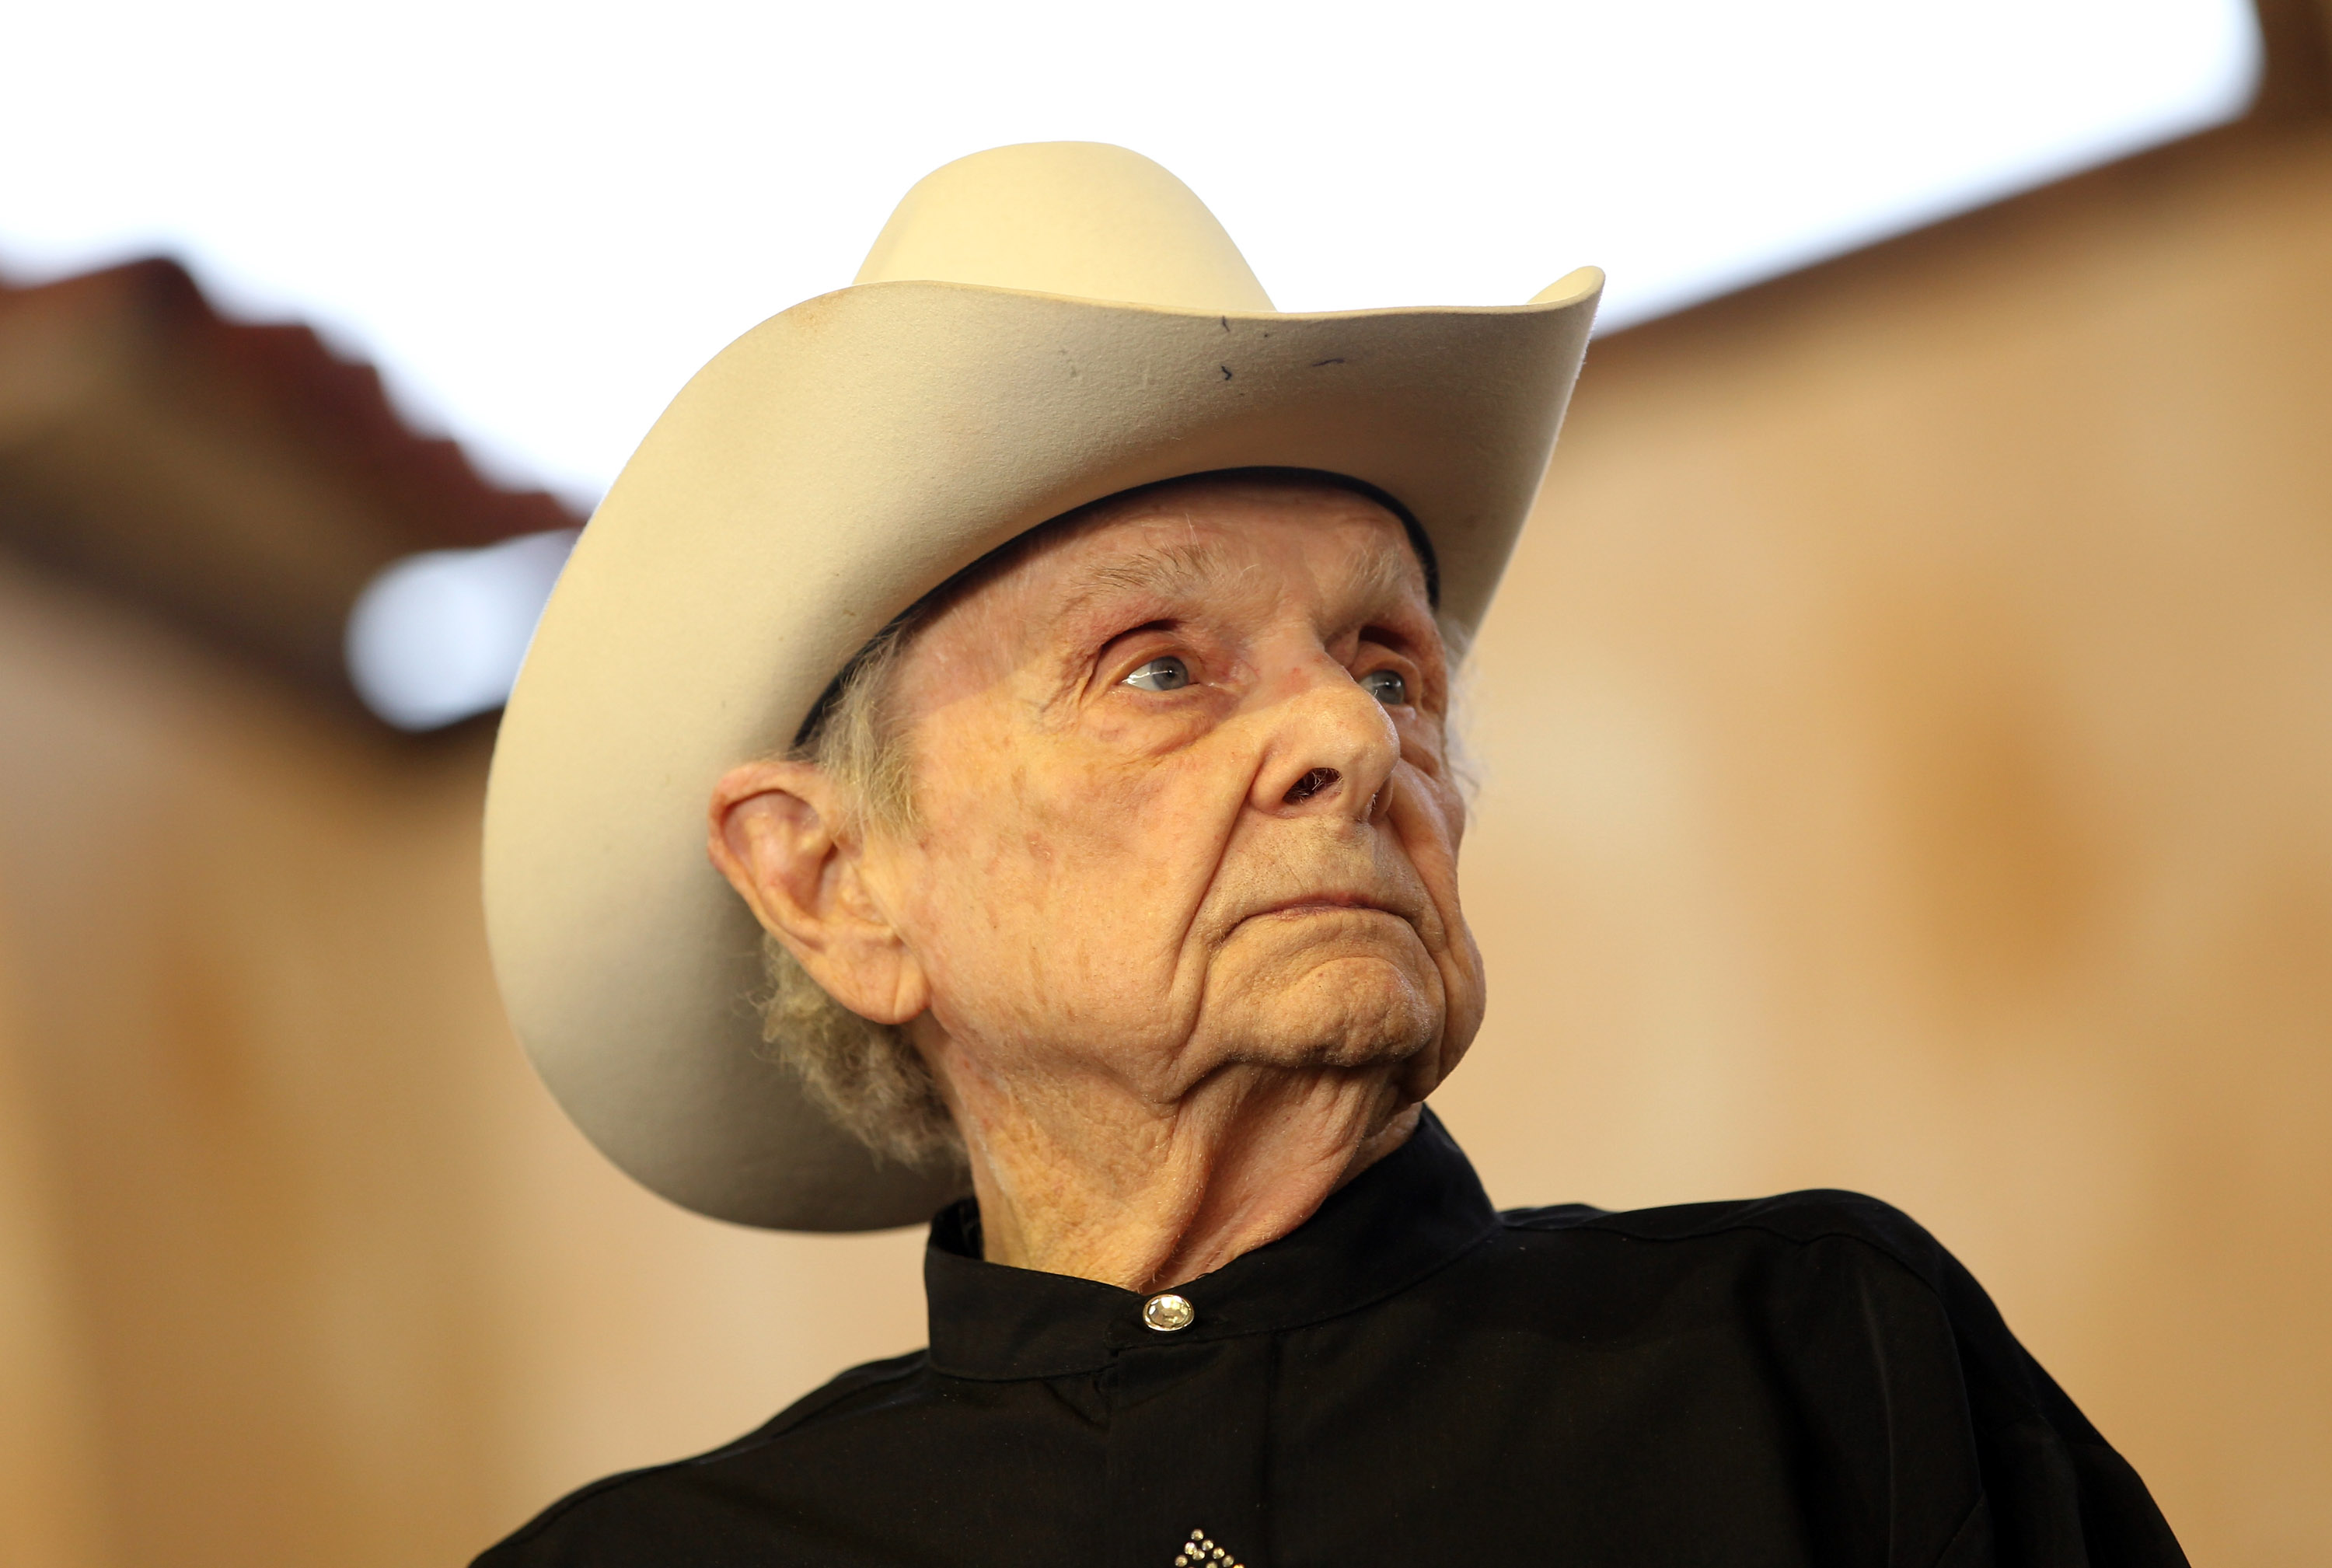 Musician Ralph Stanley performs onstage during the Stagecoach Country Music Festival on April 28, 2012 in Indio, California.